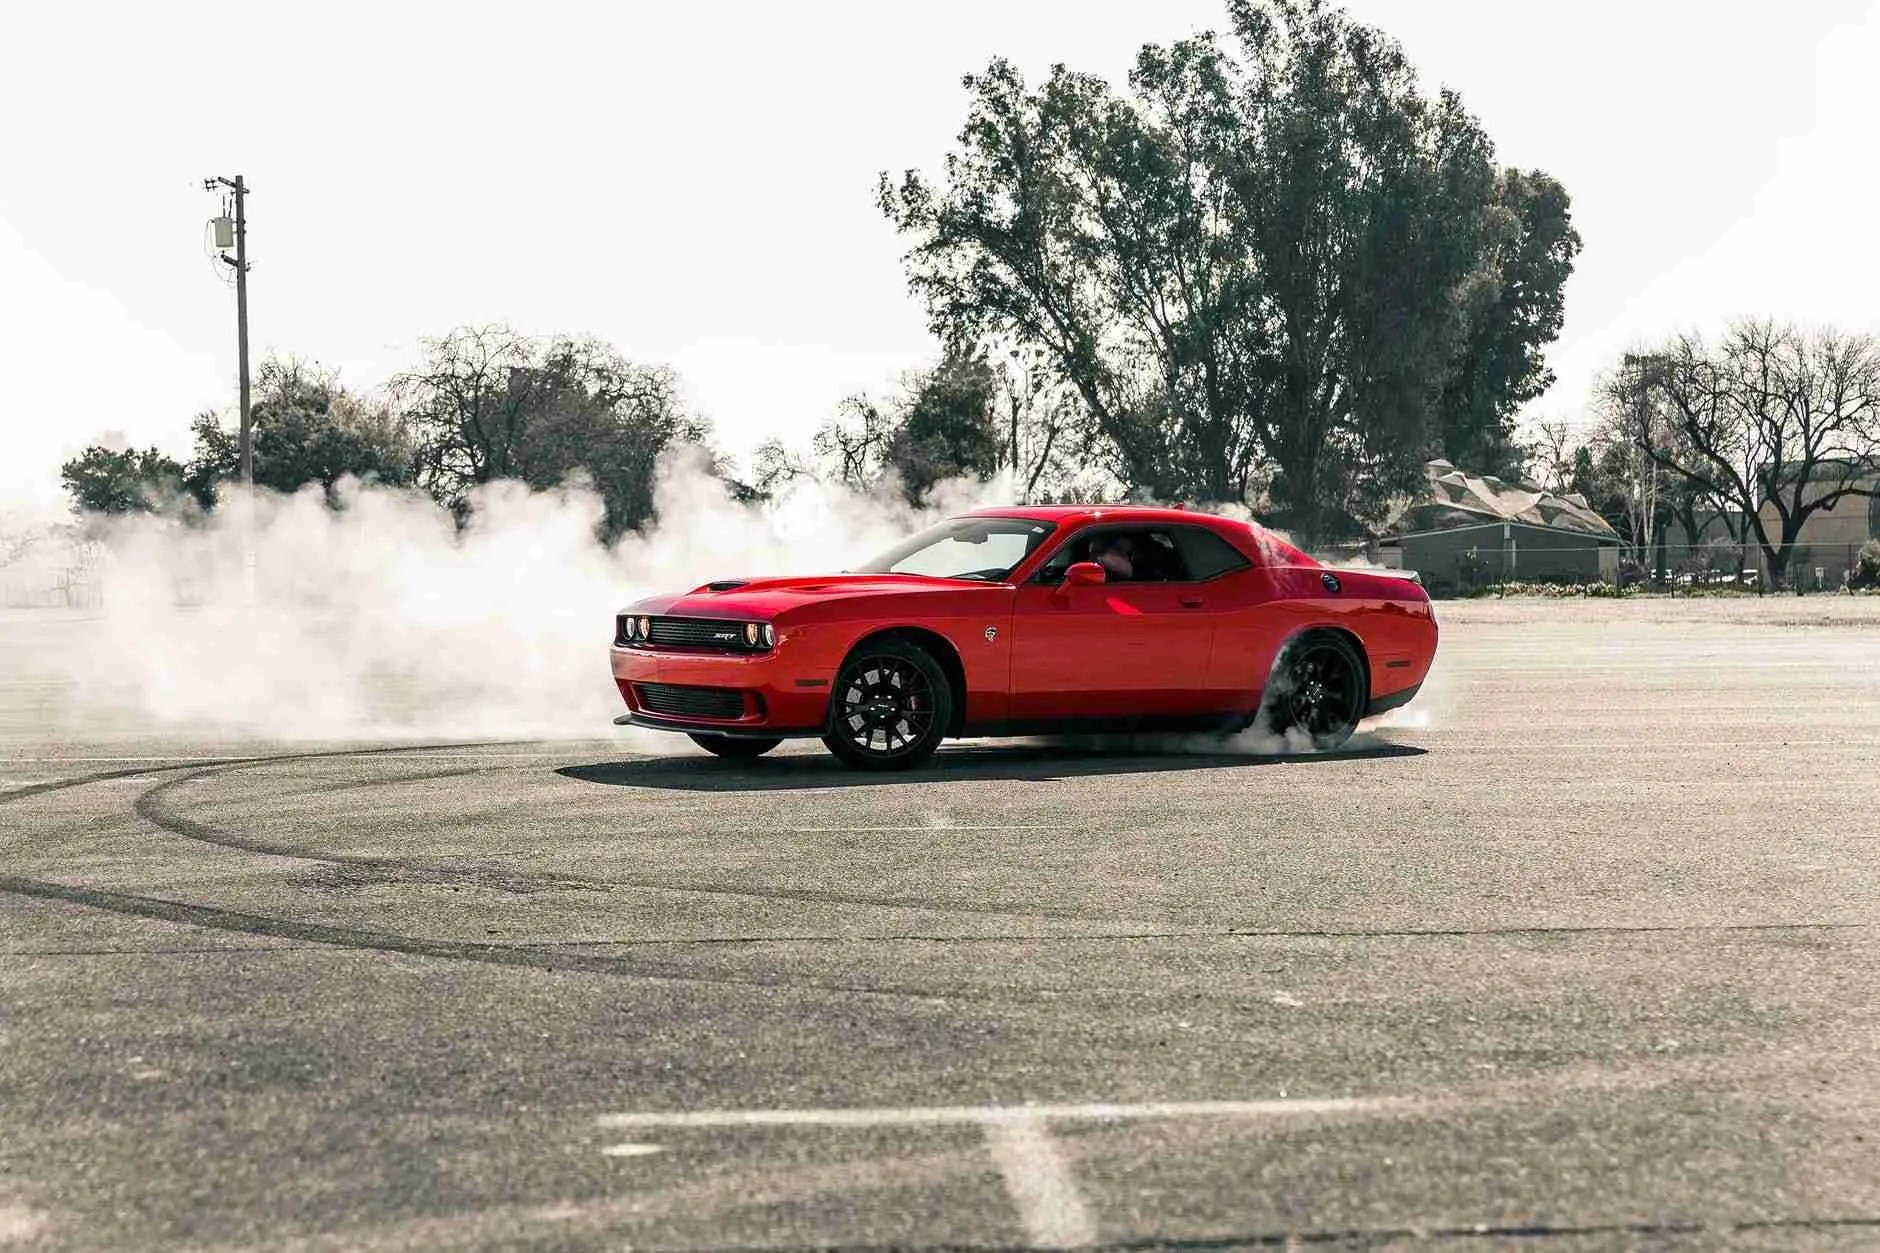 red coupe drifting on asphalt road